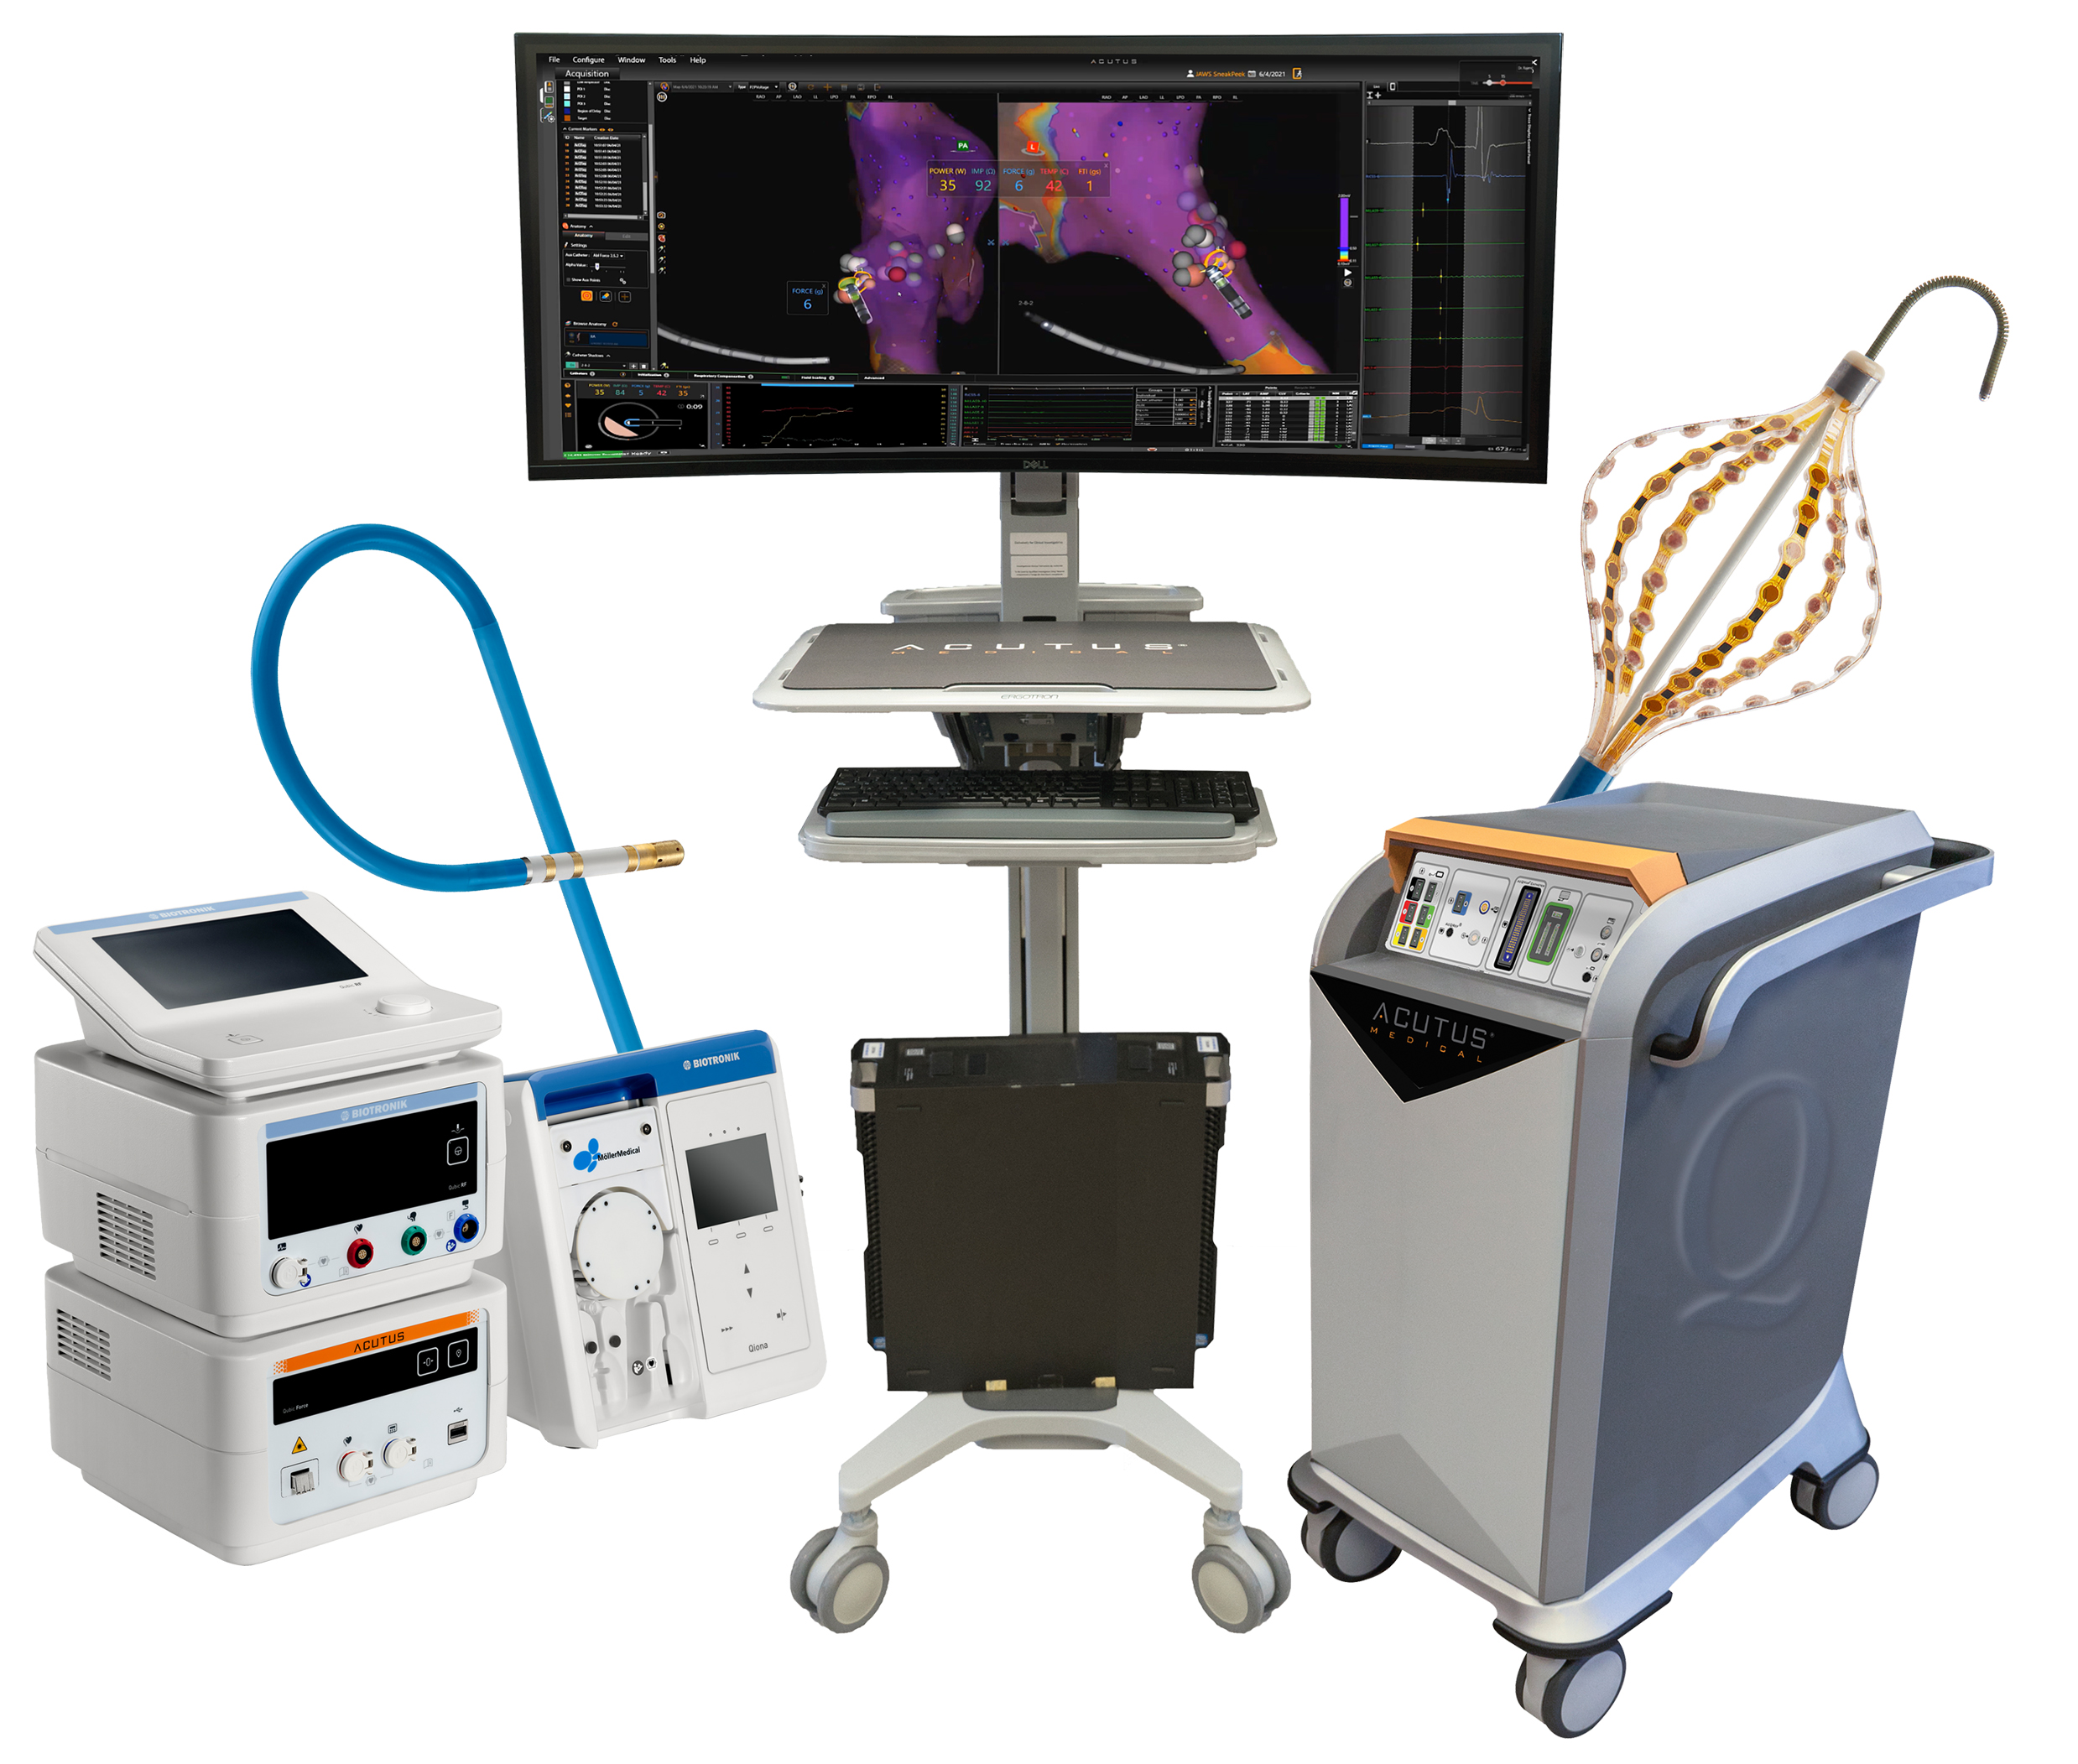 Acutus Medical's Fully Integrated Electrophysiology System